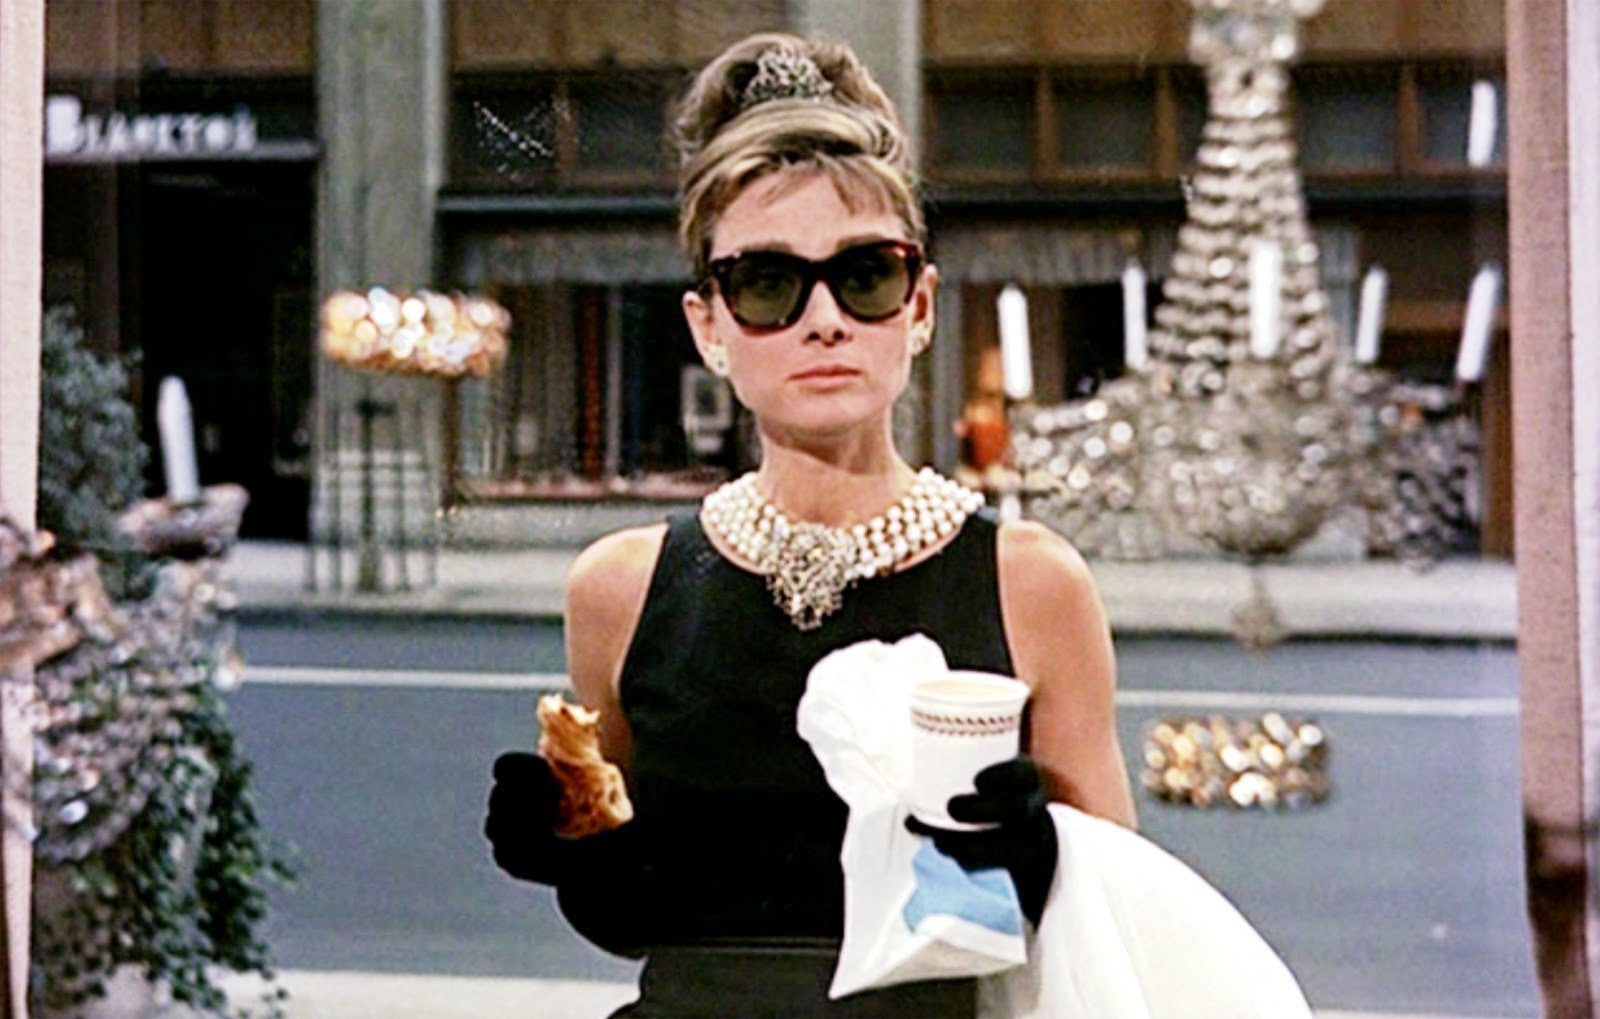 When Does The Tiffany & Co. Cafe Open? The Blue Box Café Will Let You Literally Have Breakfast At Tiffany'sParamount